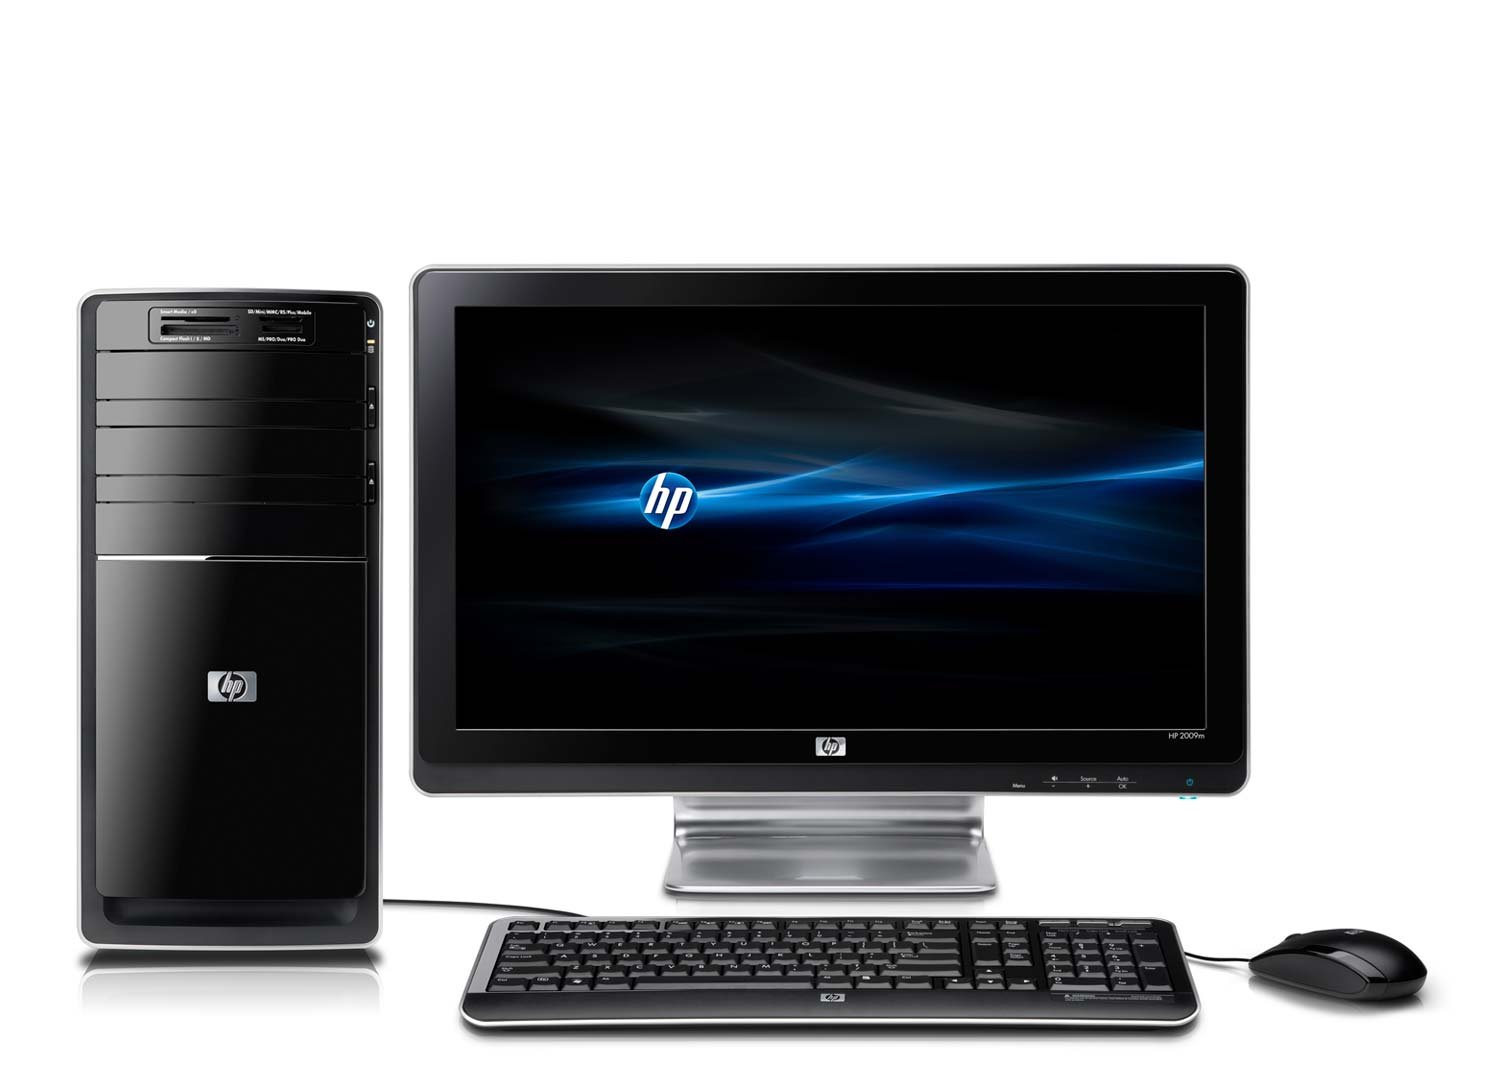 hp pavilion p6320f pc front view. Black Bedroom Furniture Sets. Home Design Ideas